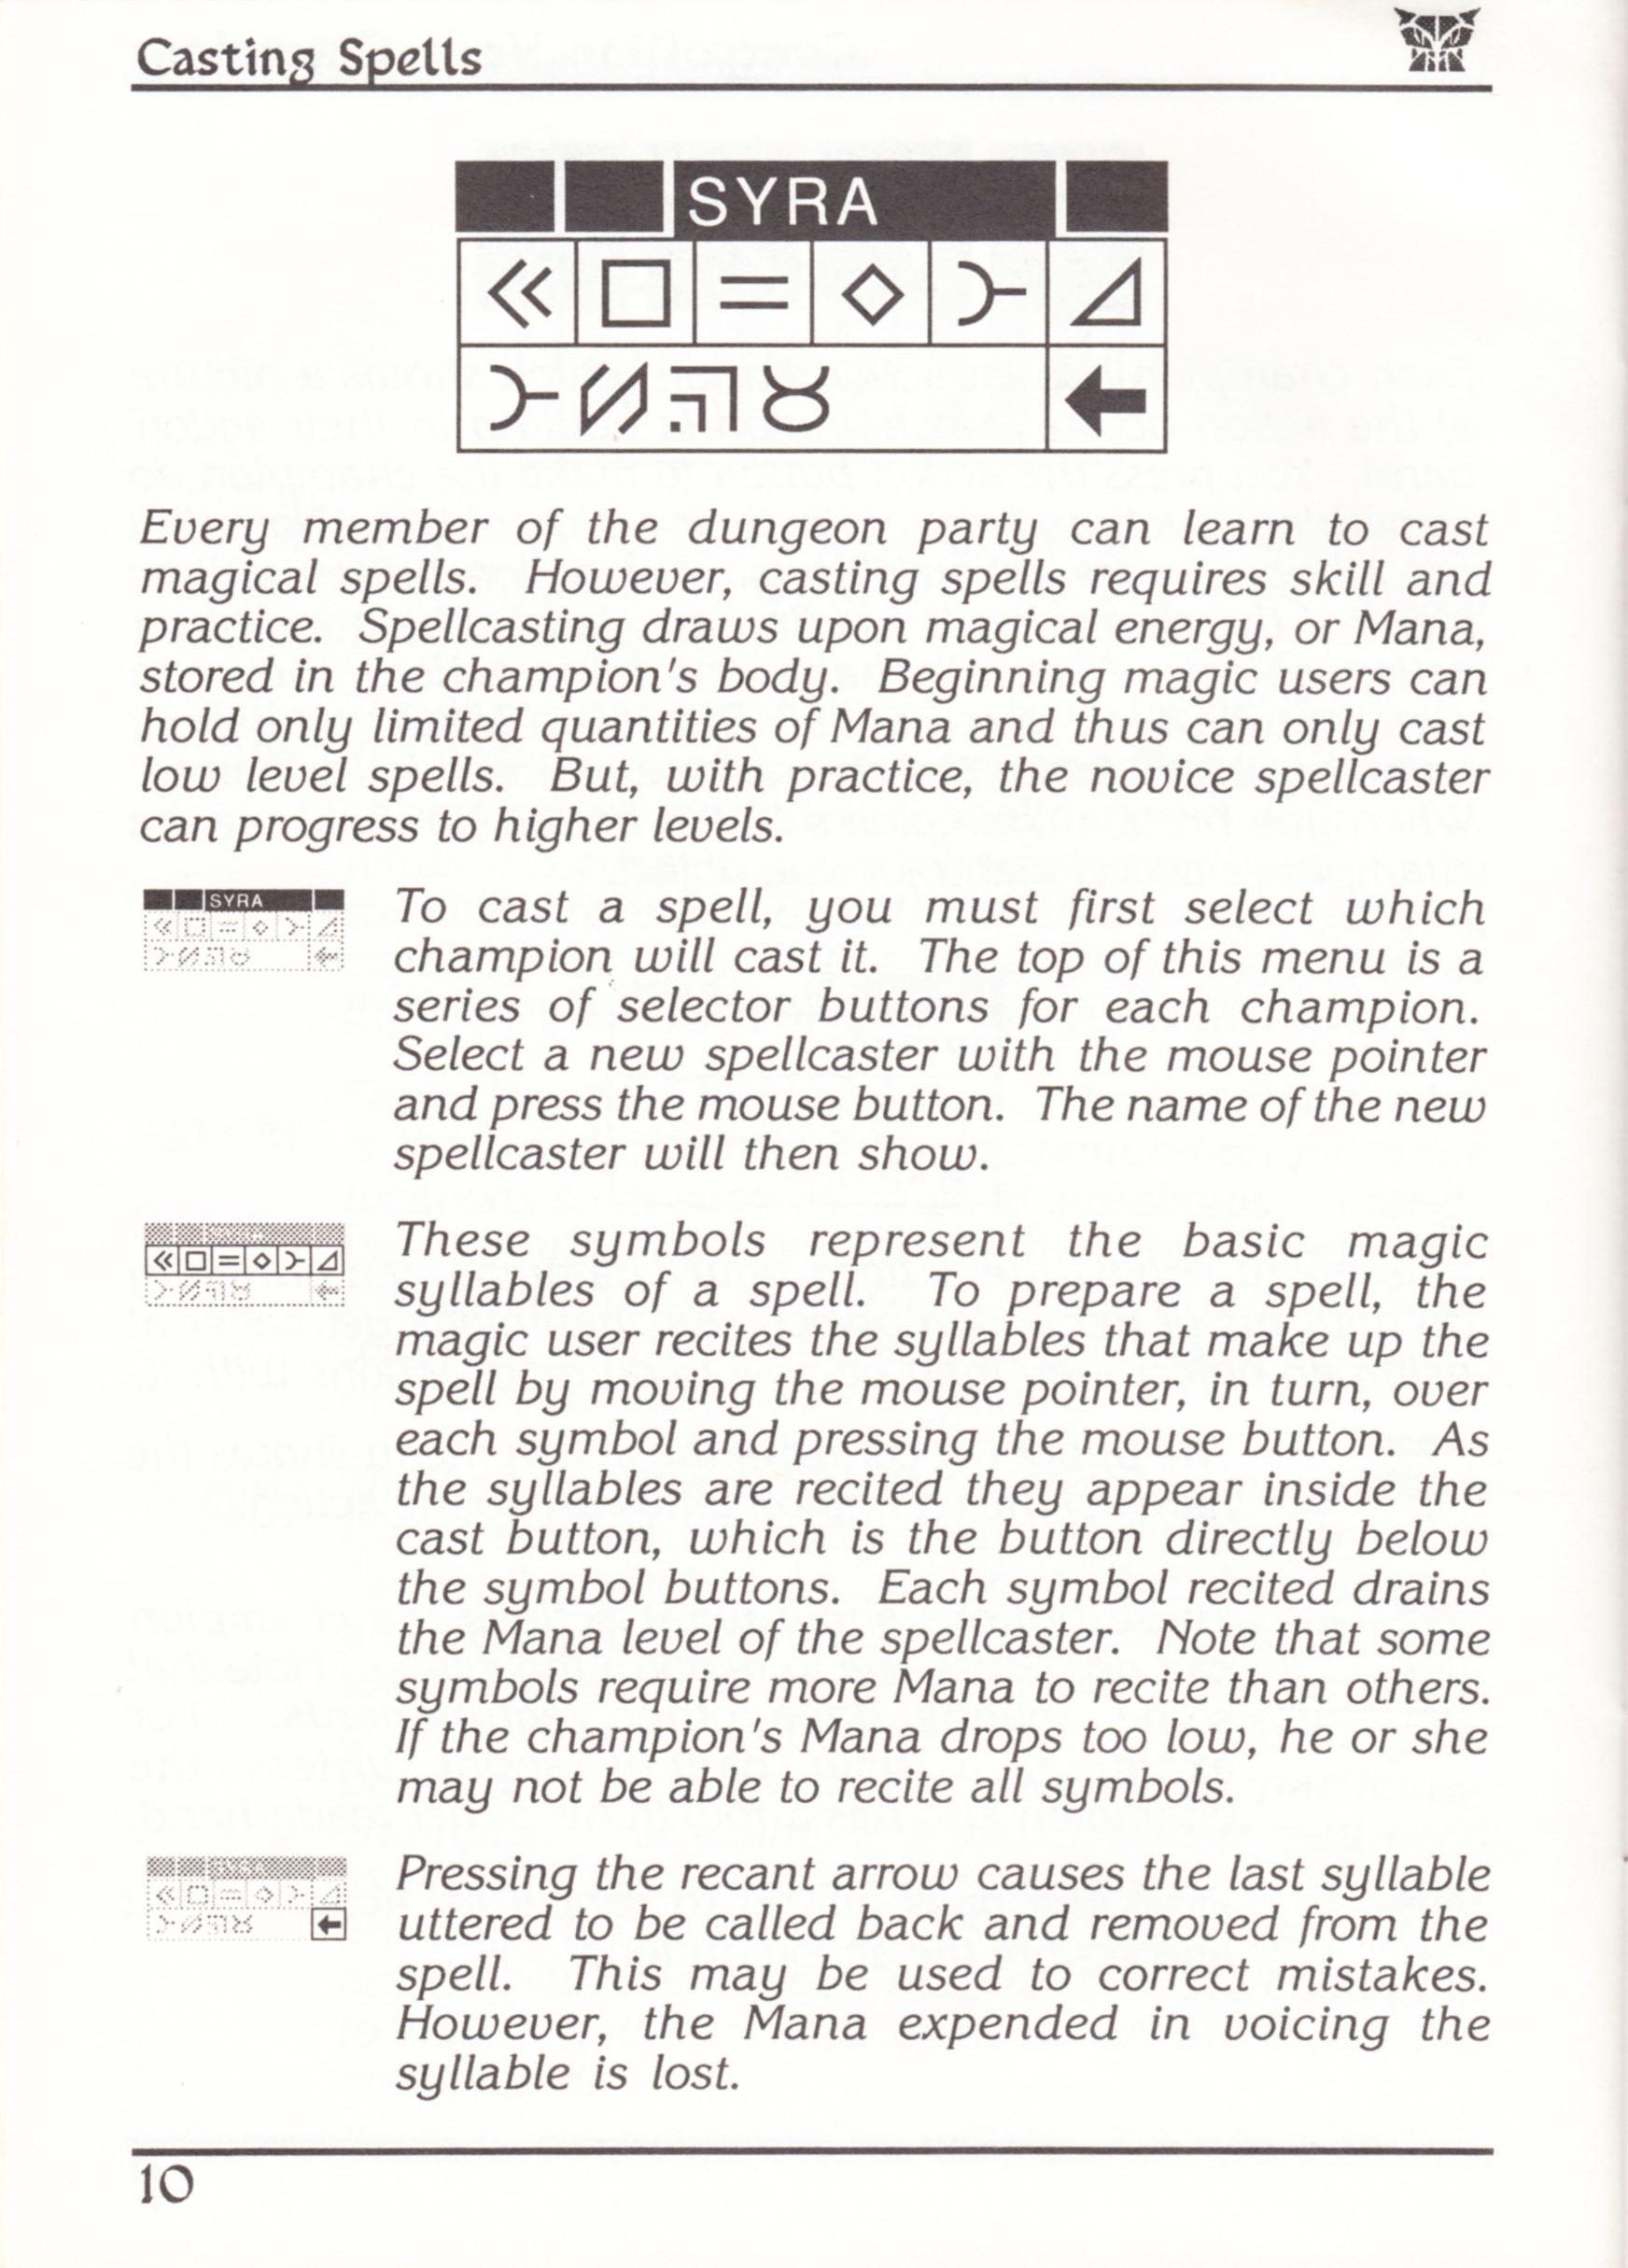 Memory Card - AmiRAM 1000 - EU - Amiga - Without Clock DM CSB - DM Manual - Page 034 - Scan